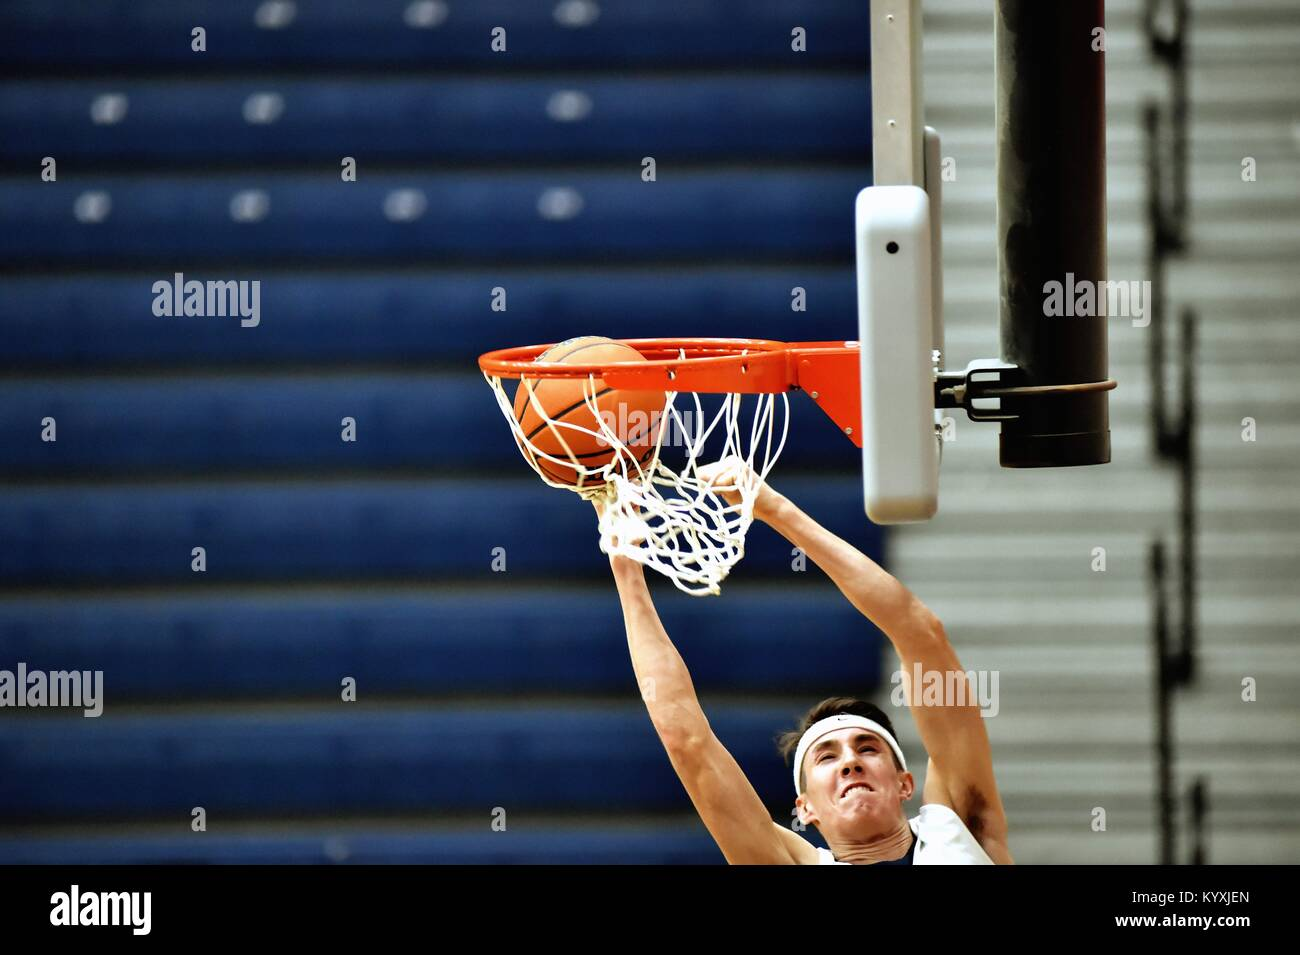 Forward hanging at the rim while slamming home two points during a high school game. USA. - Stock Image